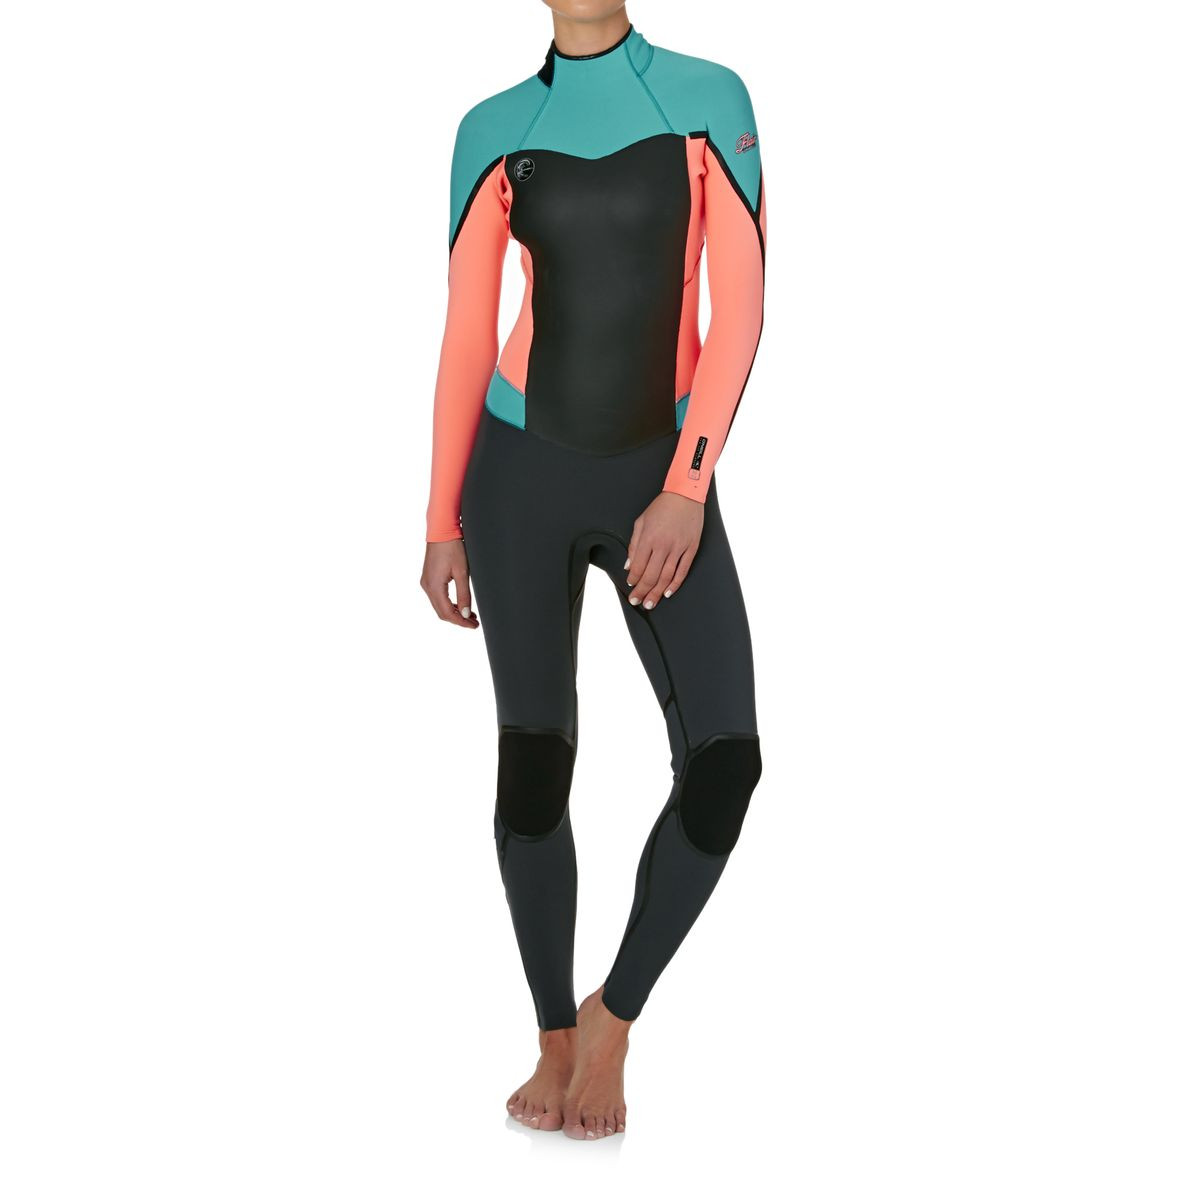 O'Neill Womems Flair 3/2mm Back Zip Wetsuit - Graphite/ Light Grapefruit/ Light Aqua